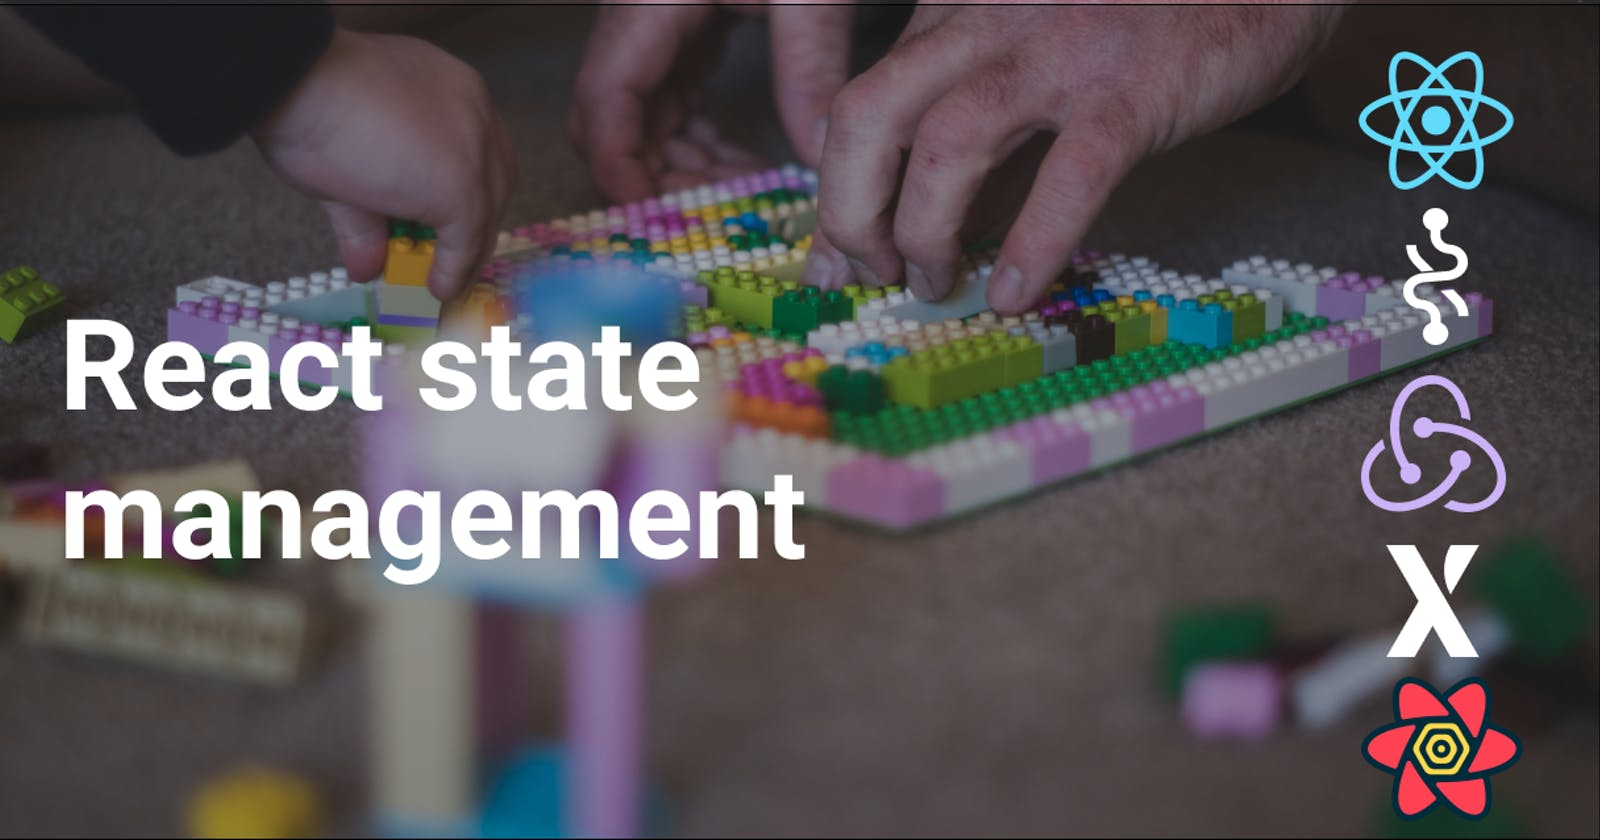 How to think about React state management